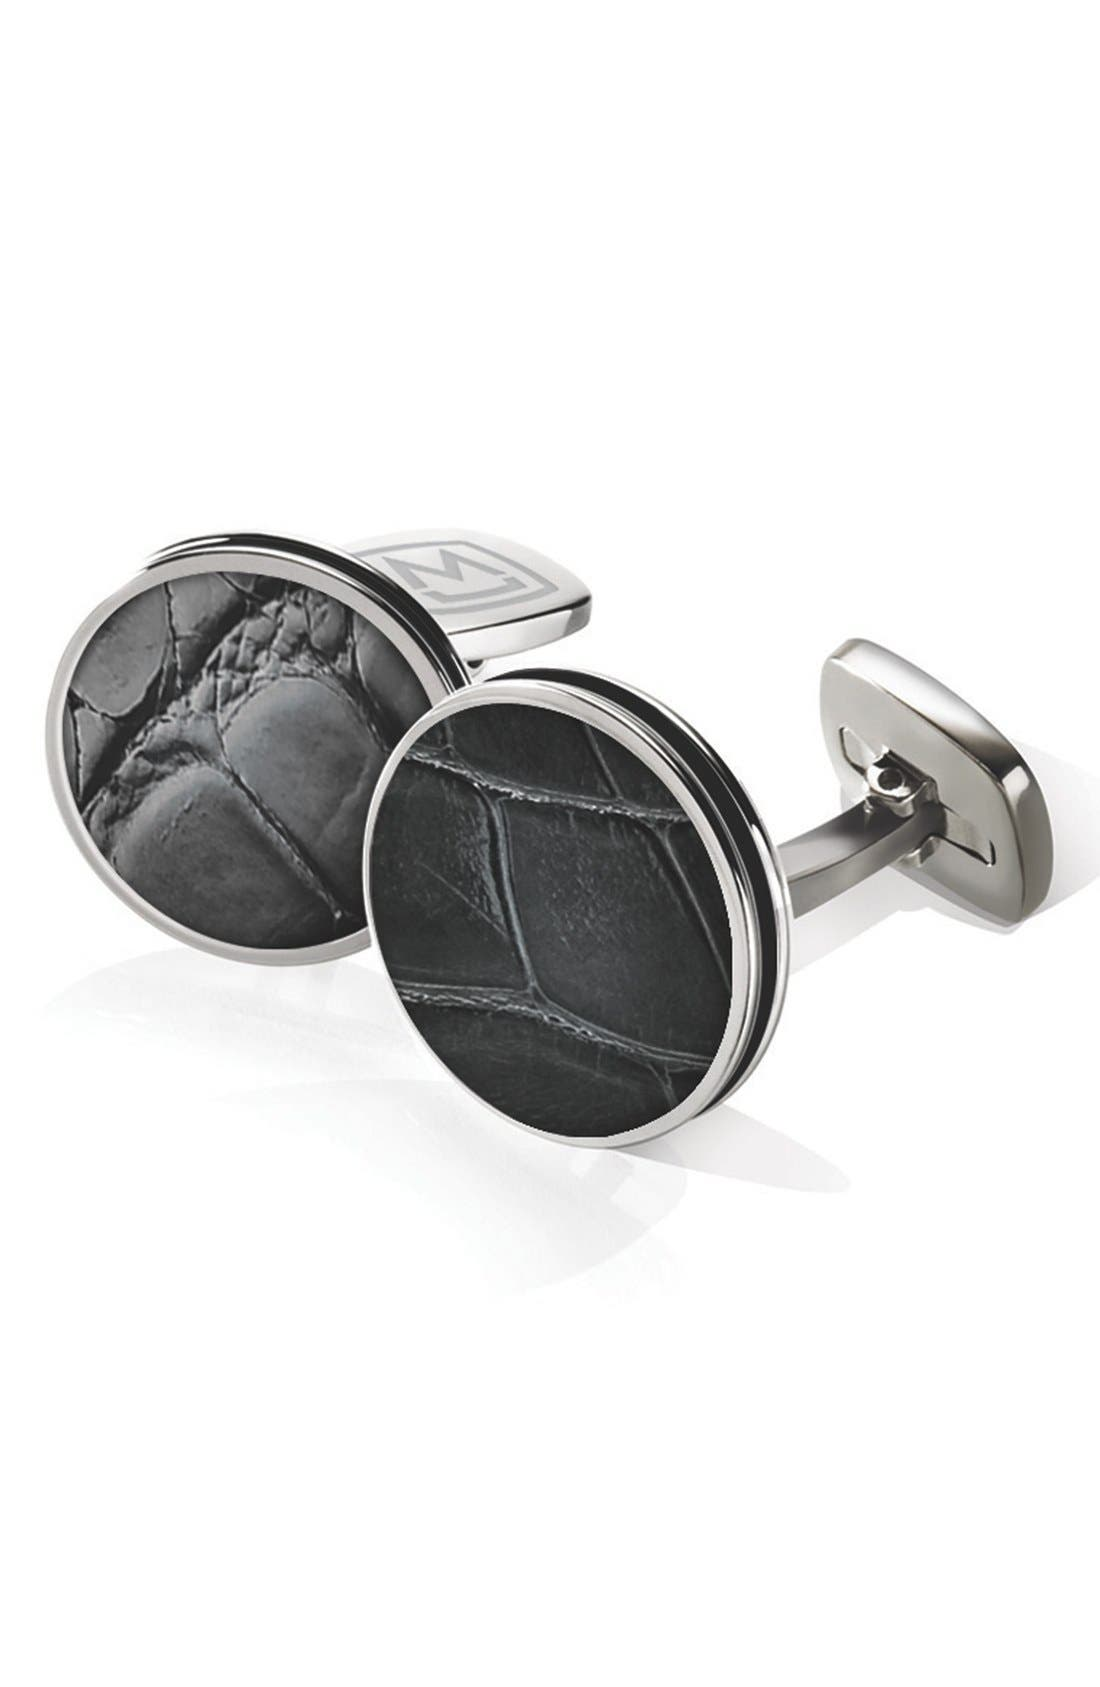 Alligator Cuff Links,                         Main,                         color, STAINLESS STEEL/ BLACK